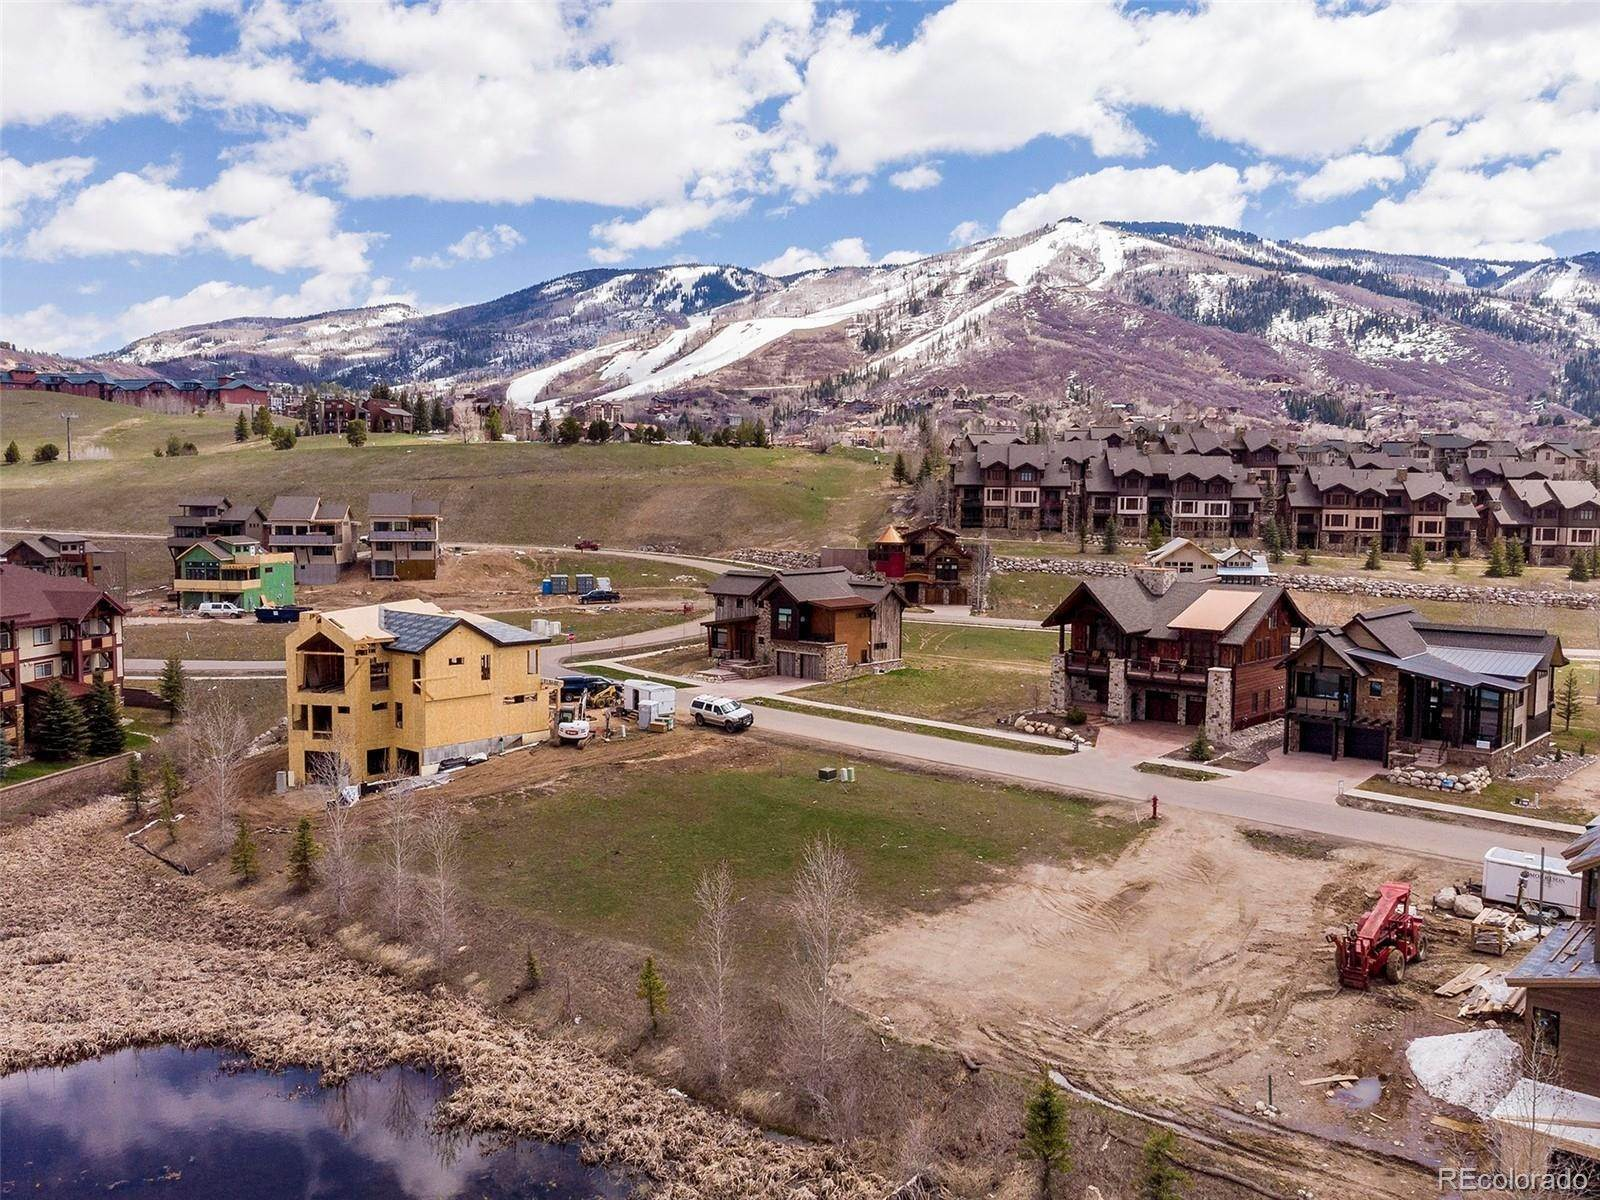 Land at Steamboat Springs, Colorado United States